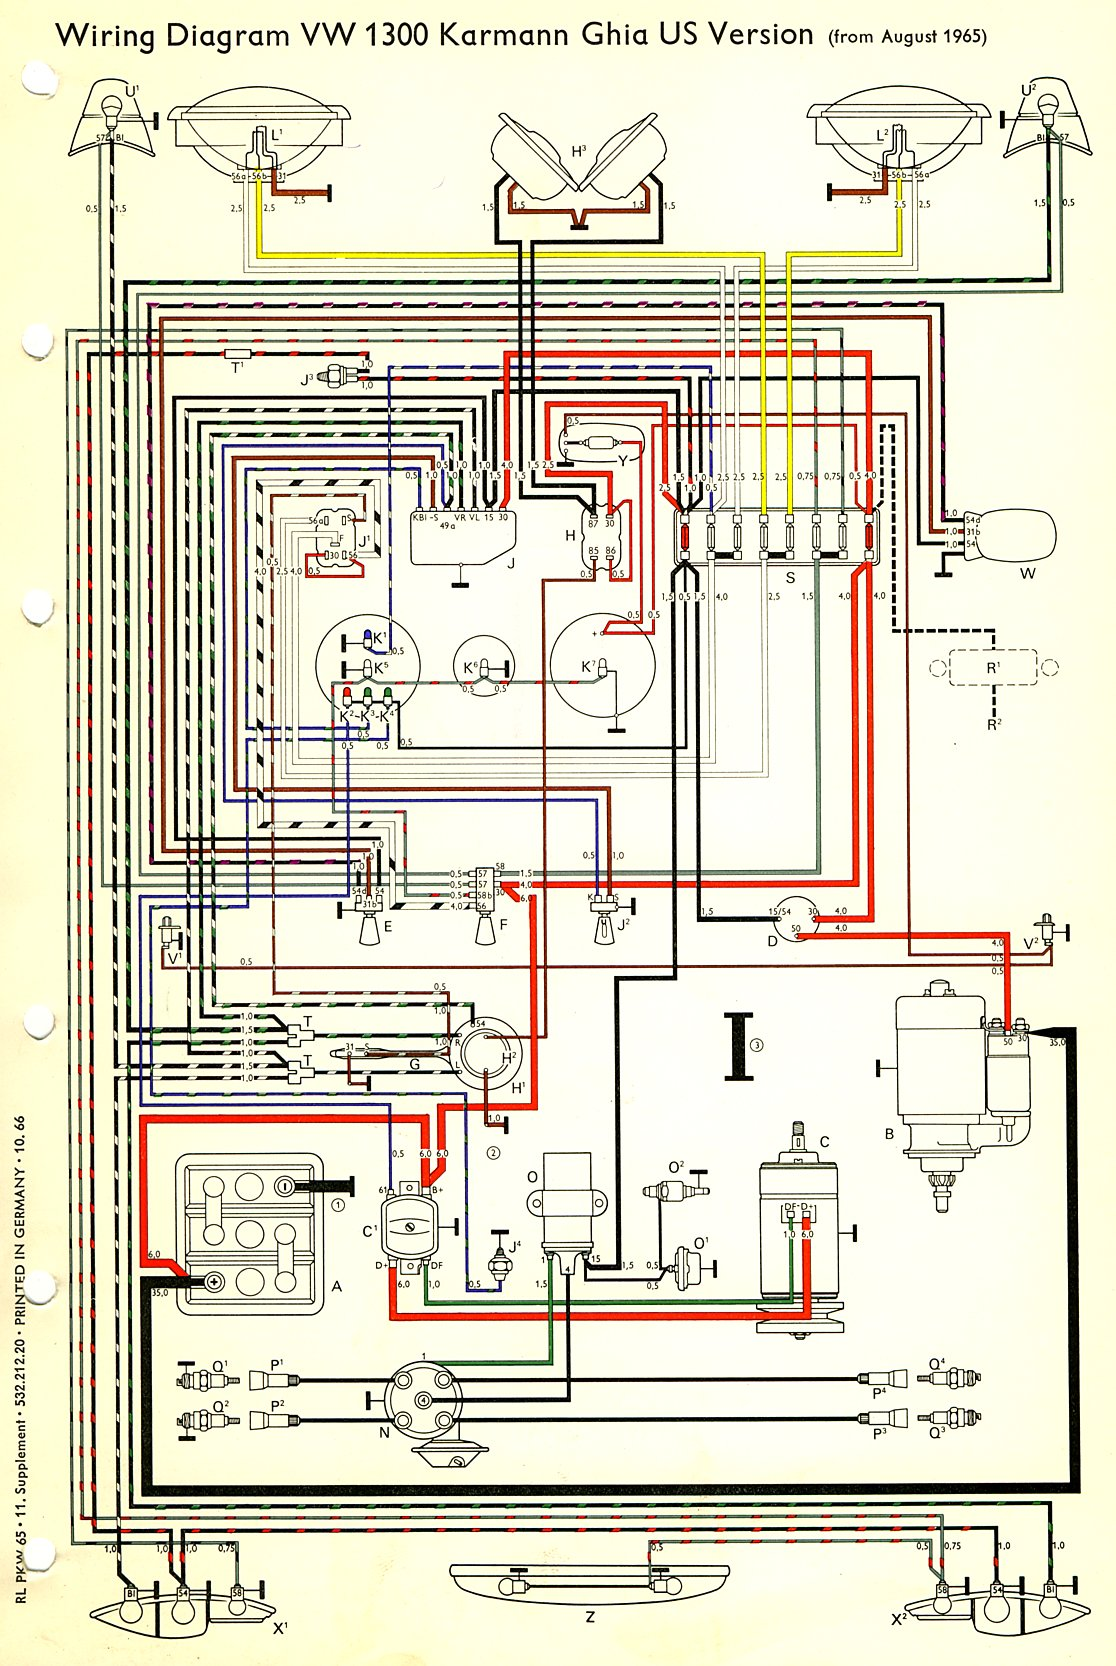 ghia_66_USA thesamba com karmann ghia wiring diagrams wiring diagram for dummies at n-0.co